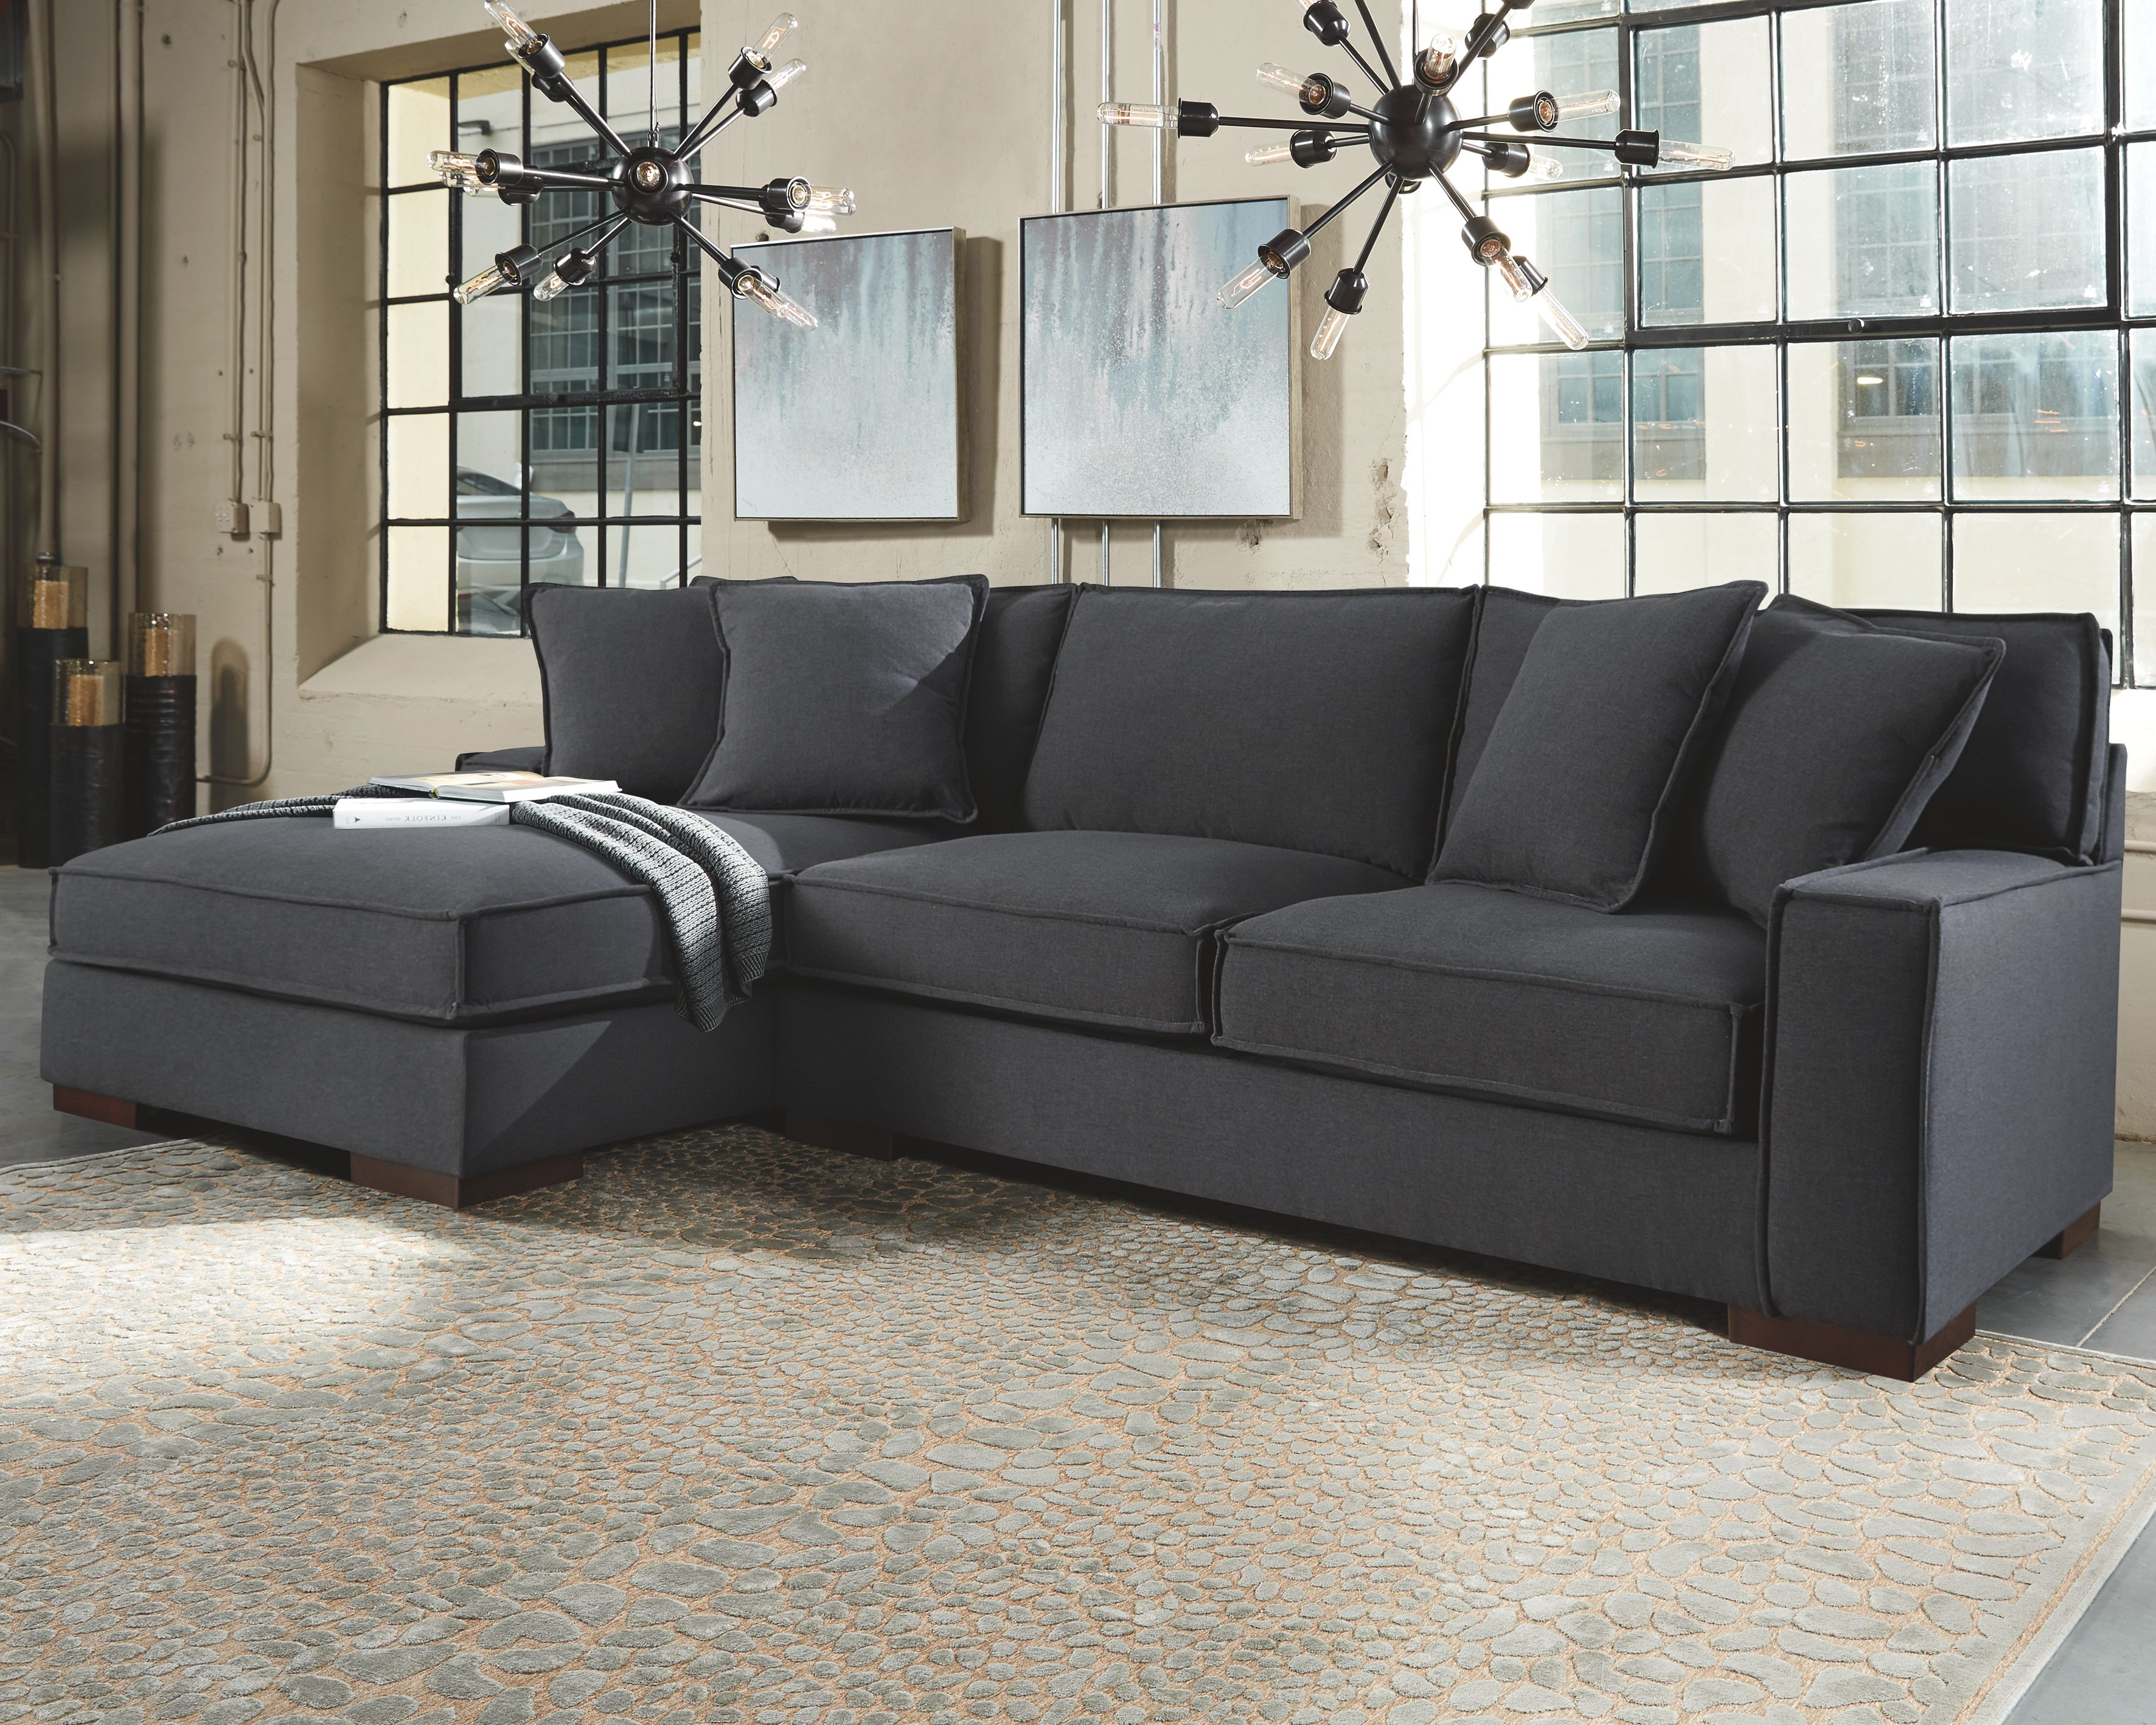 Gamaliel 2 Piece Sectional Charcoal Products In 2019 Grey